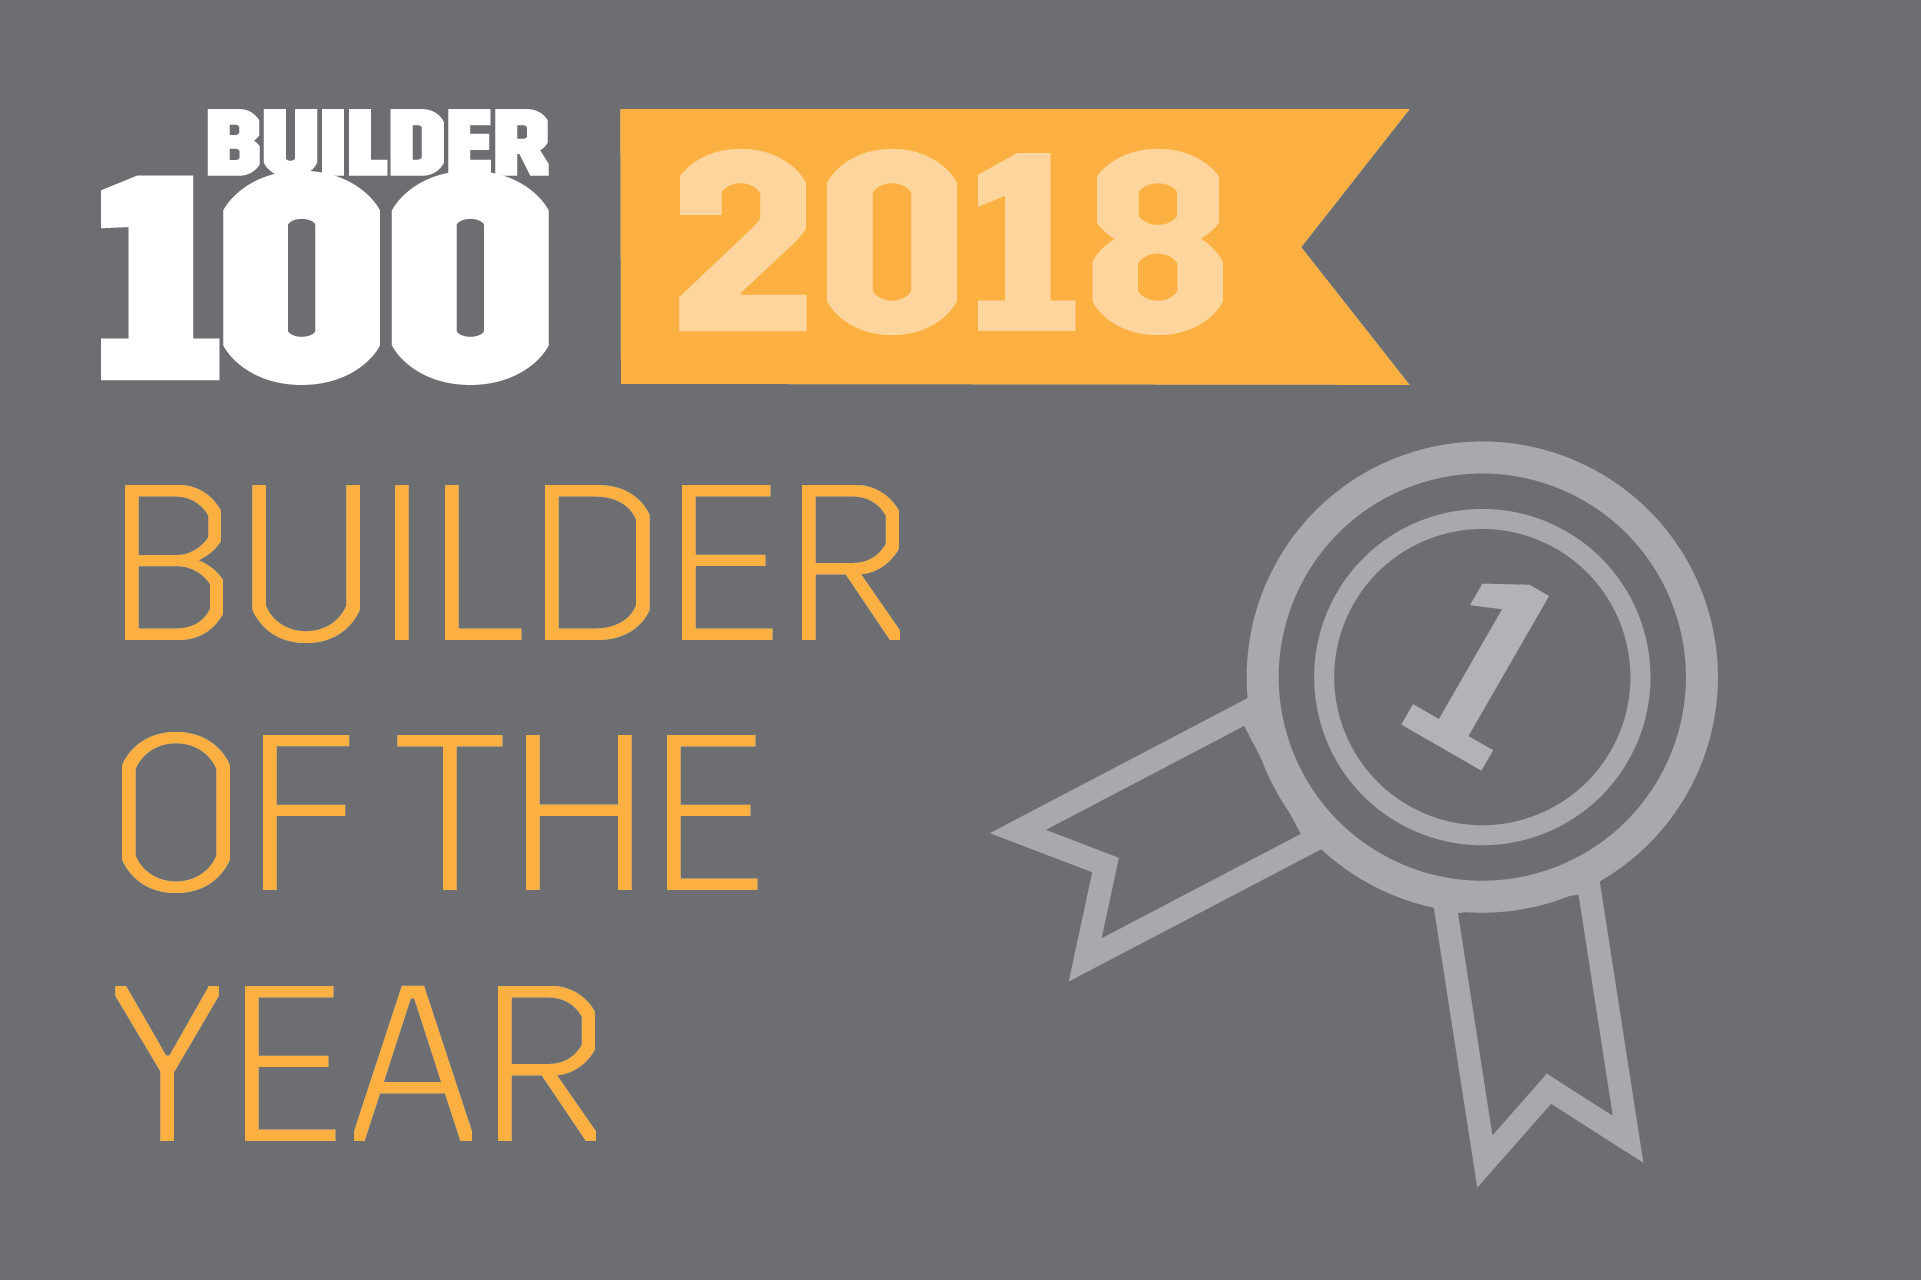 hardwood flooring logos of builder honors lennar as 2018 builder of the year builder magazine within builder honors lennar as 2018 builder of the year builder magazine business mergers and acquisitions local markets management business and